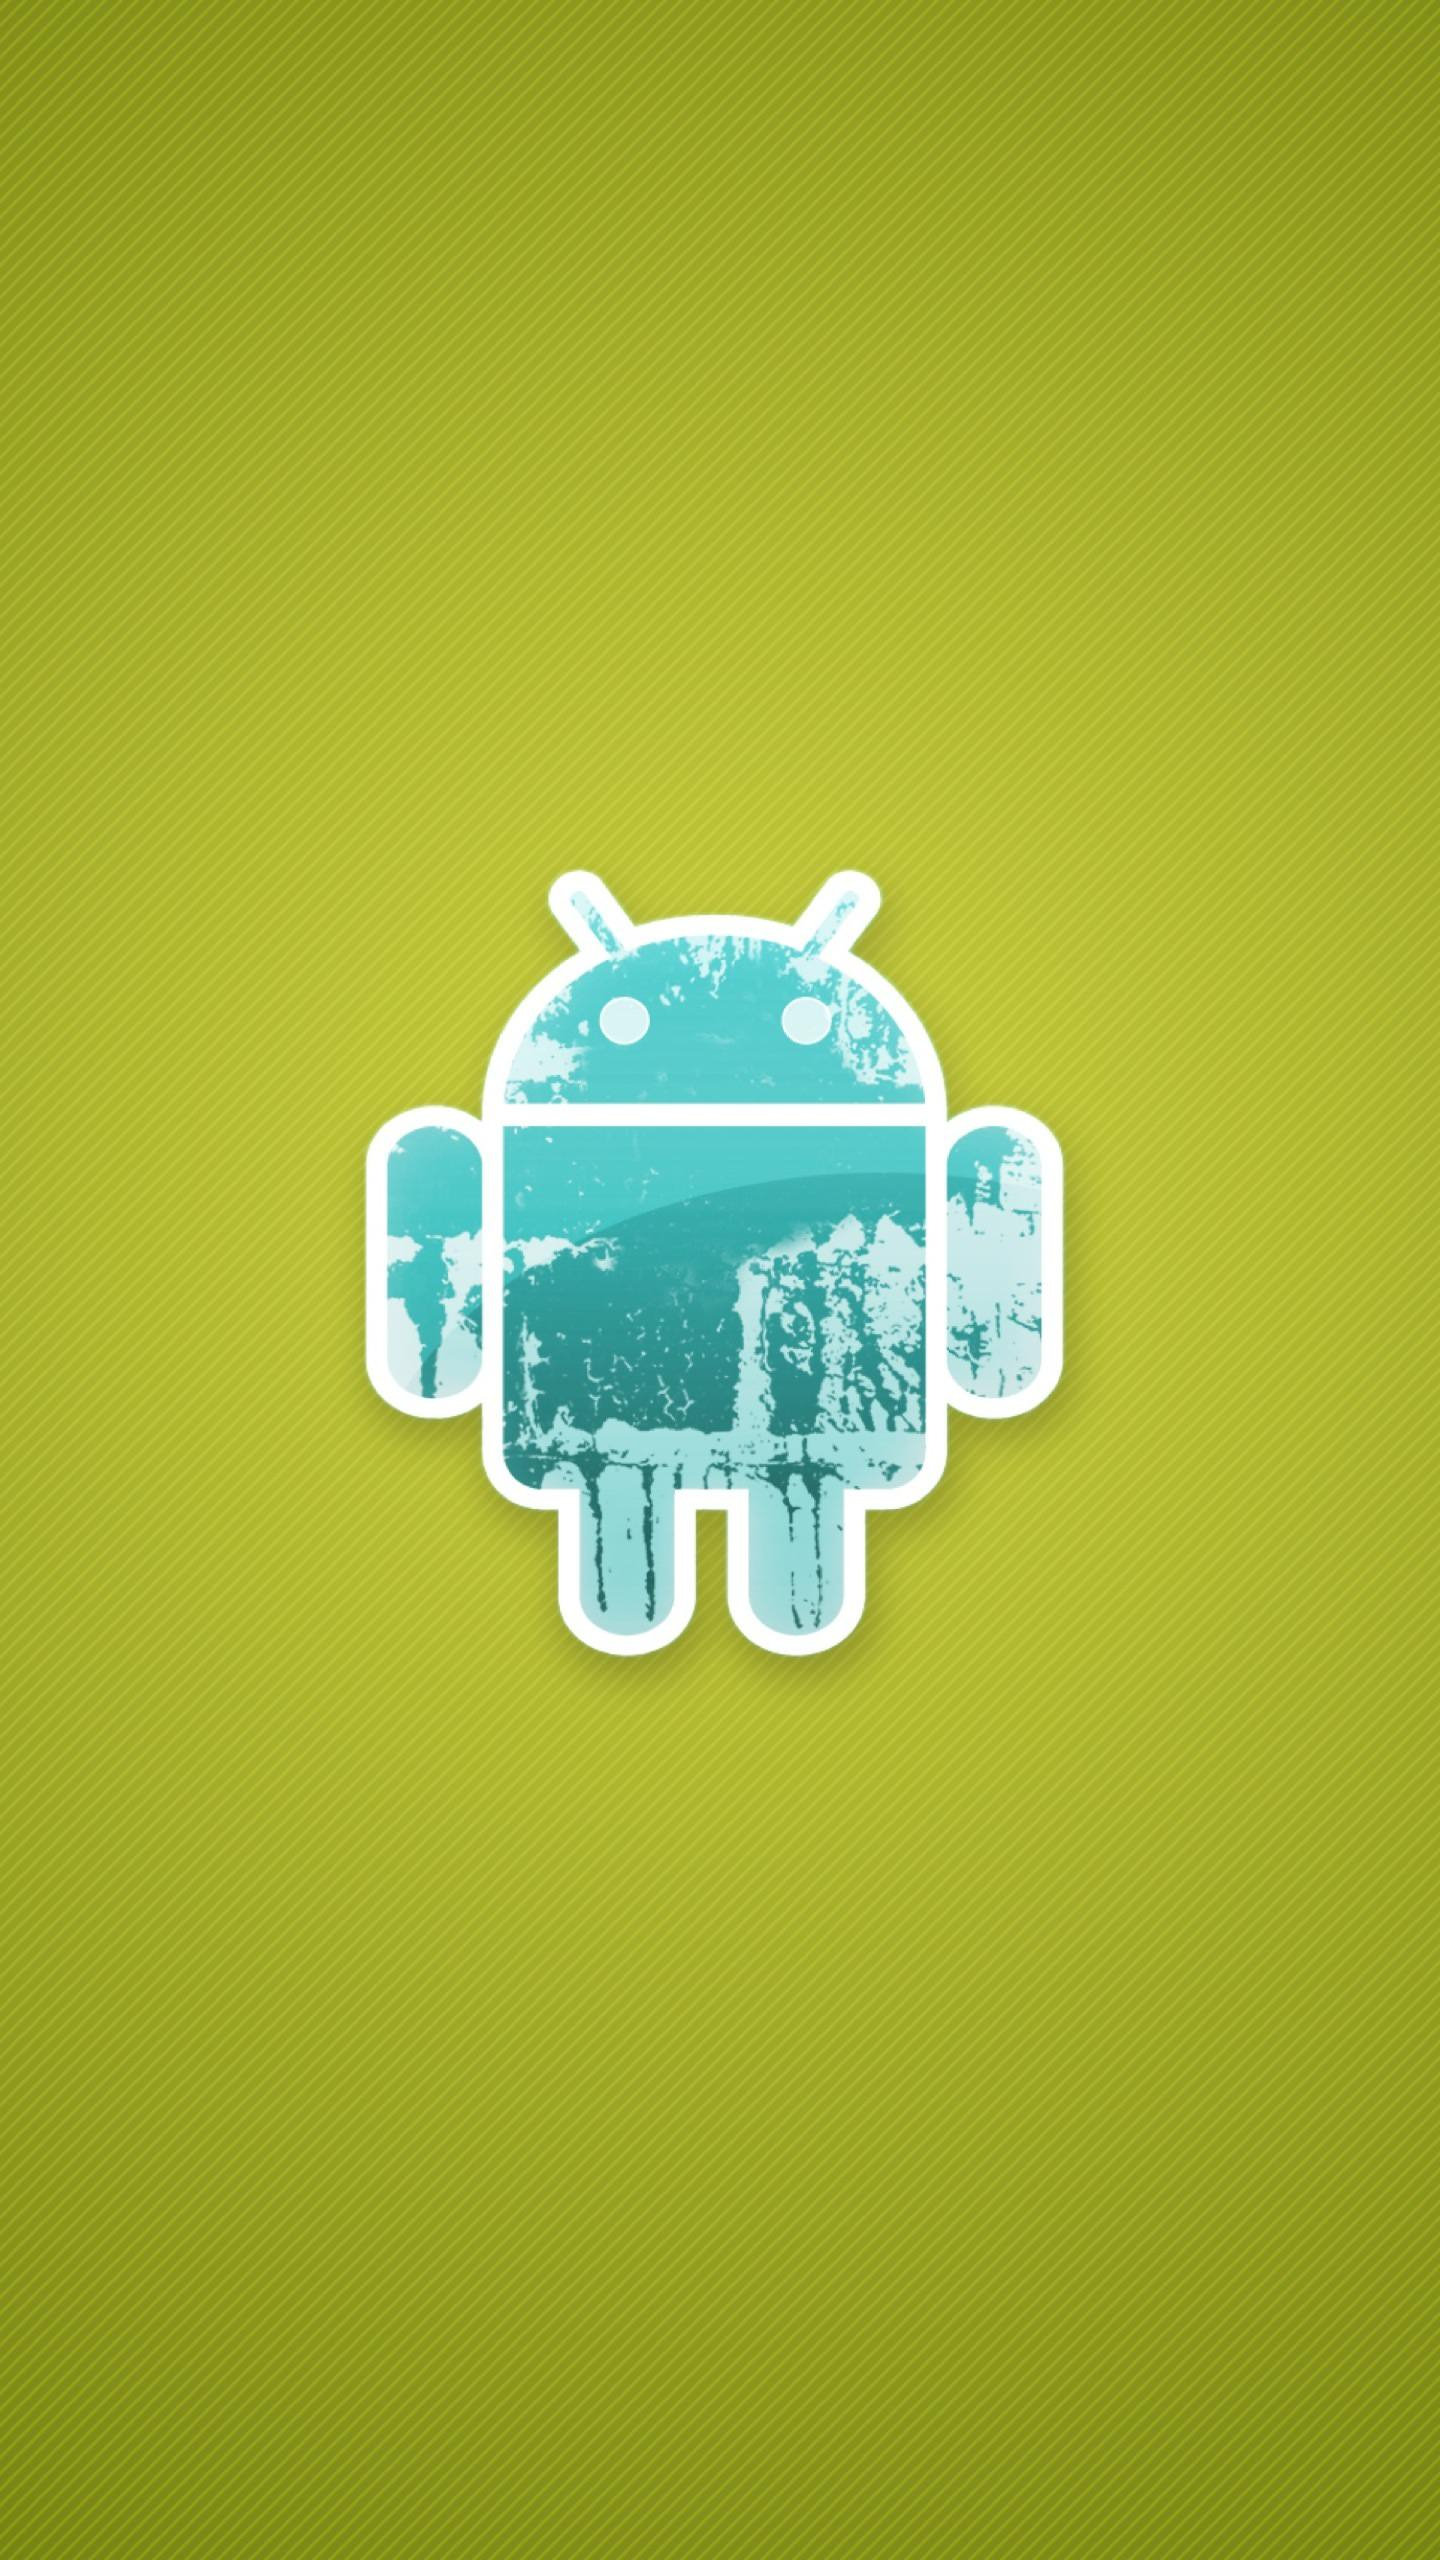 Android SmartPhone QHD 壁紙 0525